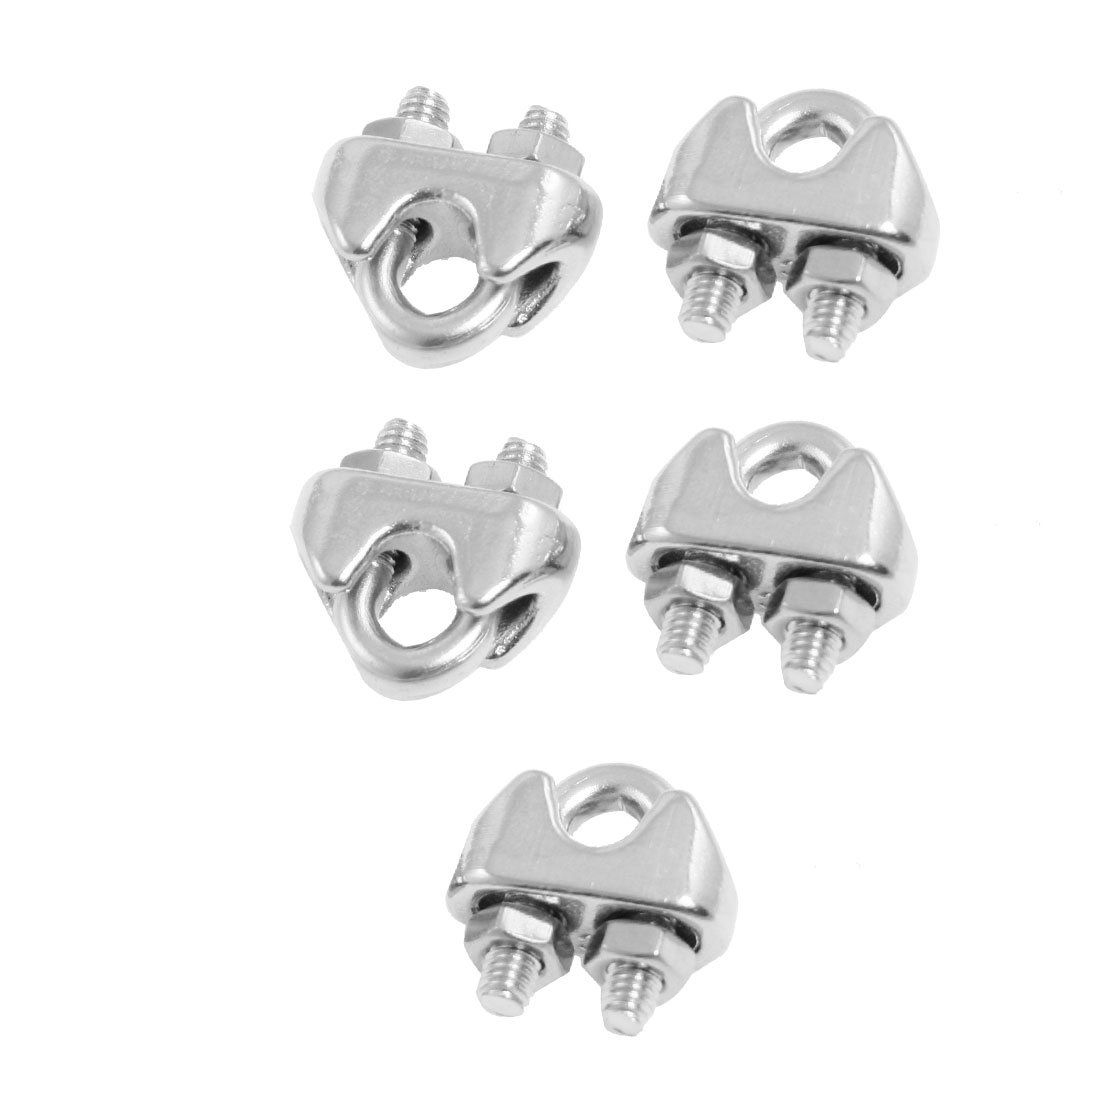 HHTL-5 Pcs 304 Stainless Steel Saddle Clamp Cable Clip for 325 3mm Wire Rope